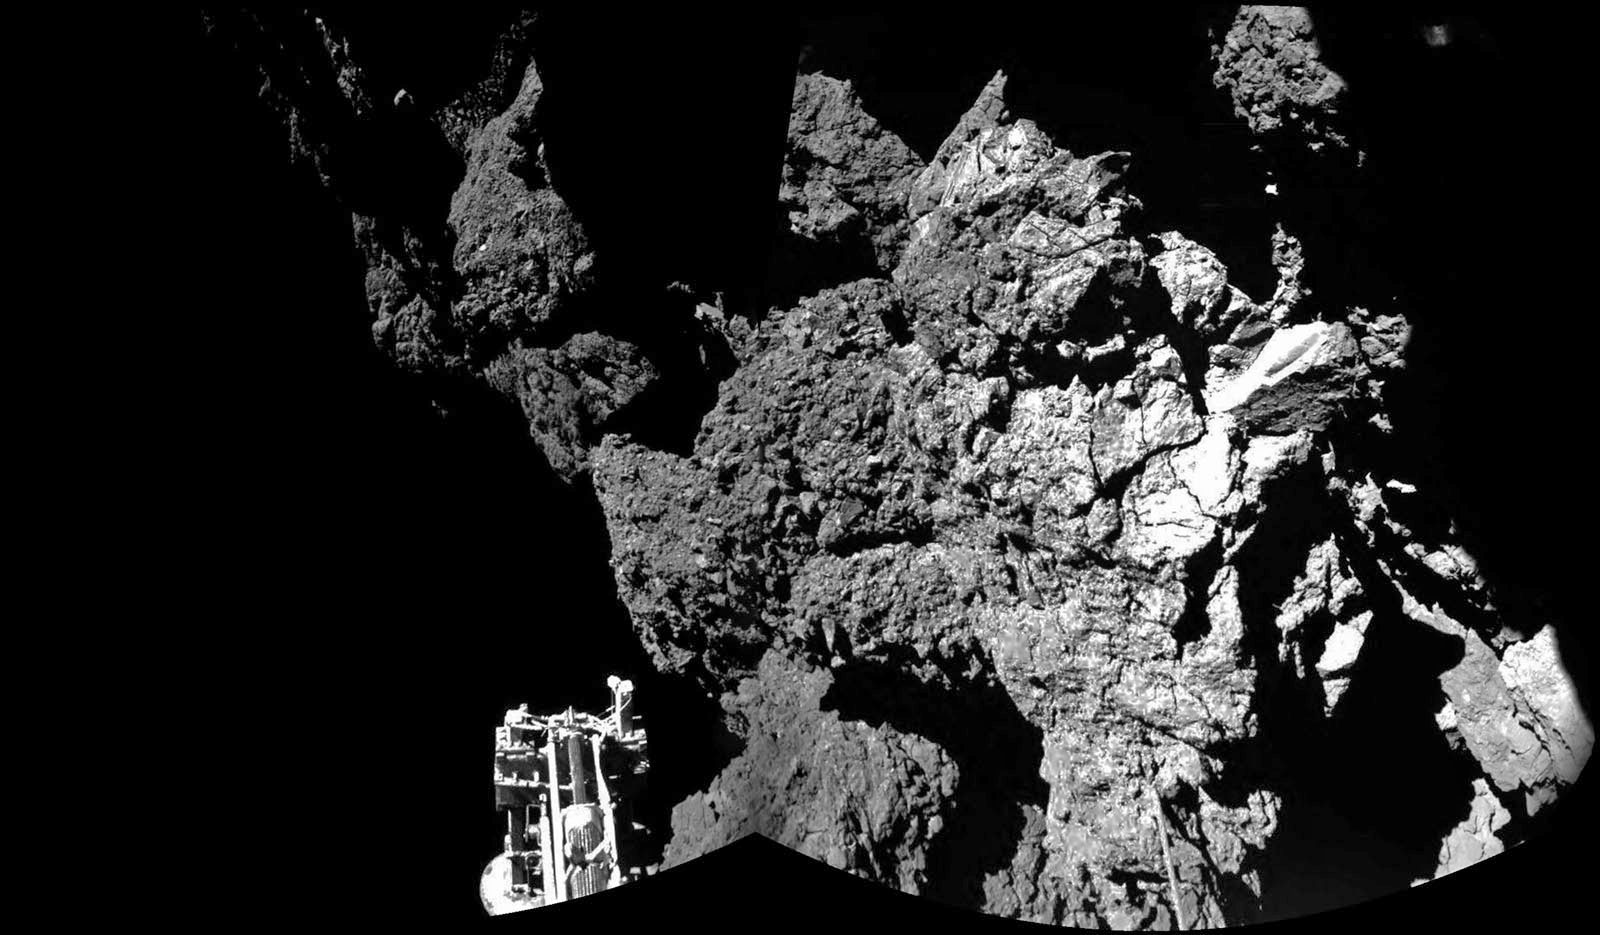 Philae comet lander tweets heartbreaking goodbye as communications switch off